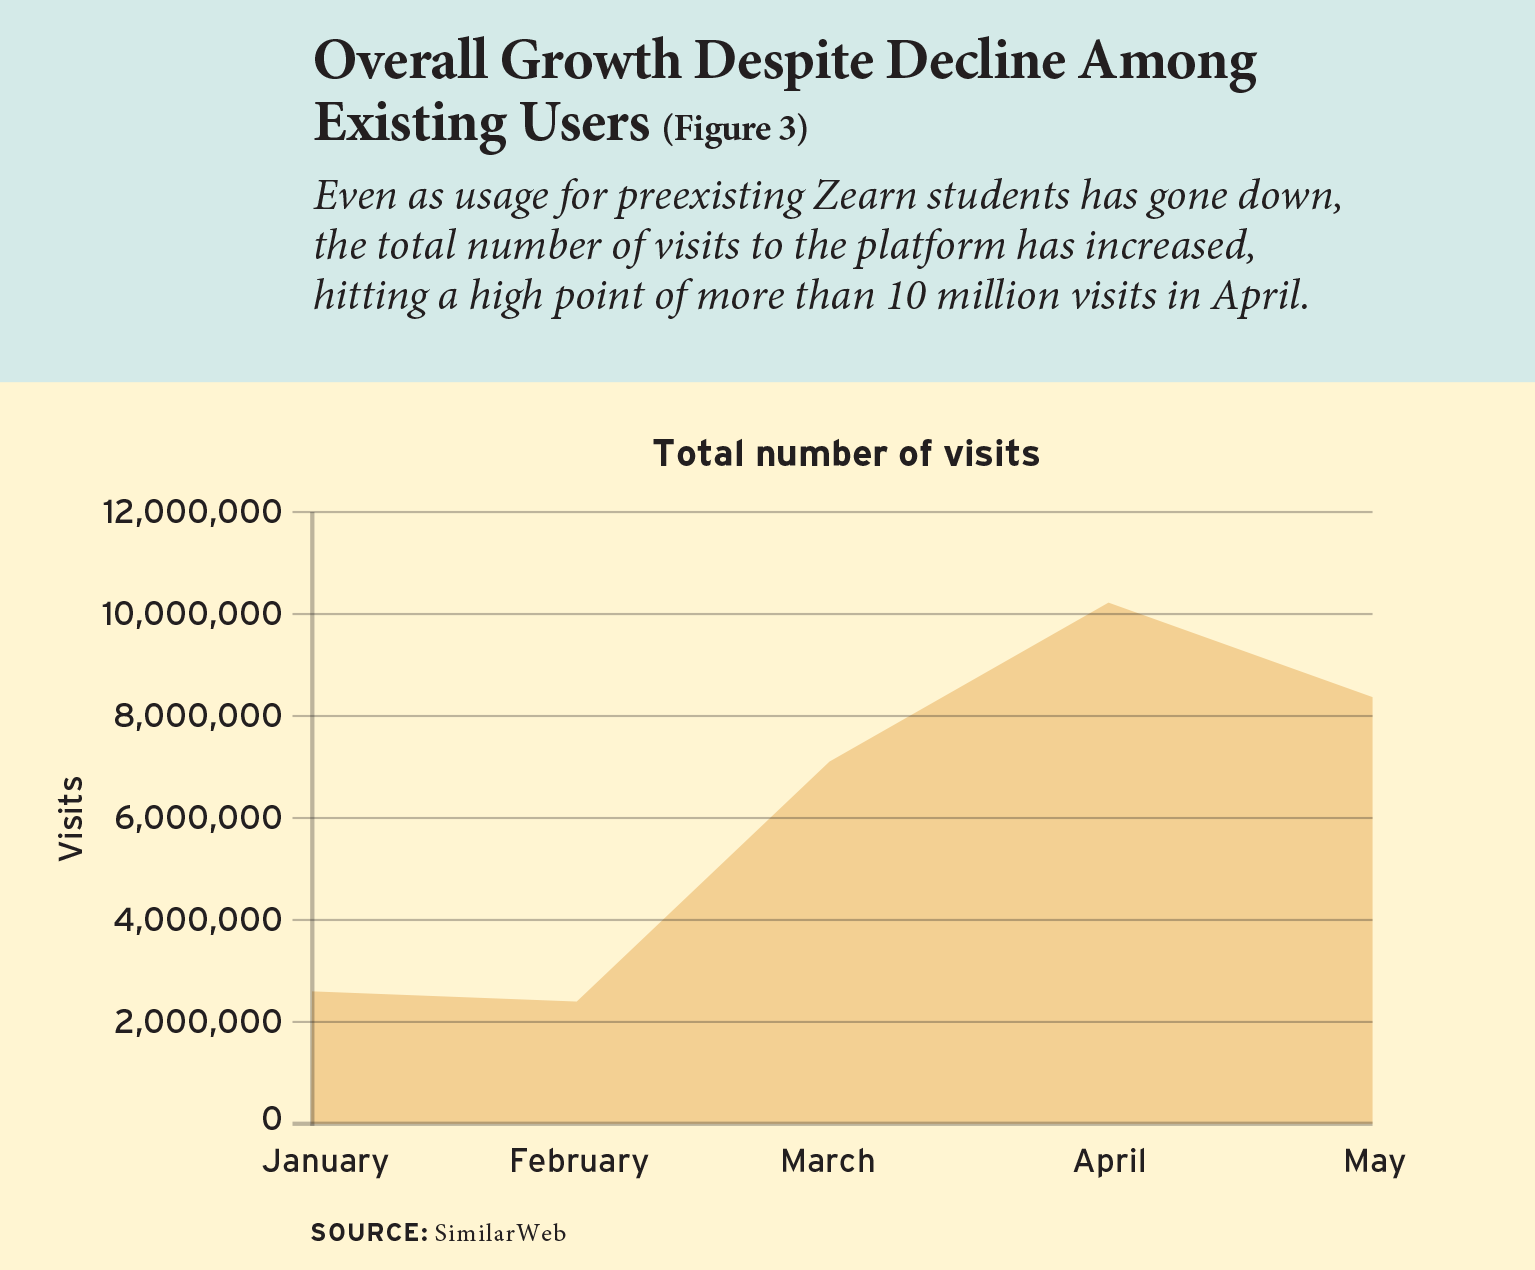 Figure 3: Overall Growth Despite Decline Among Existing Users